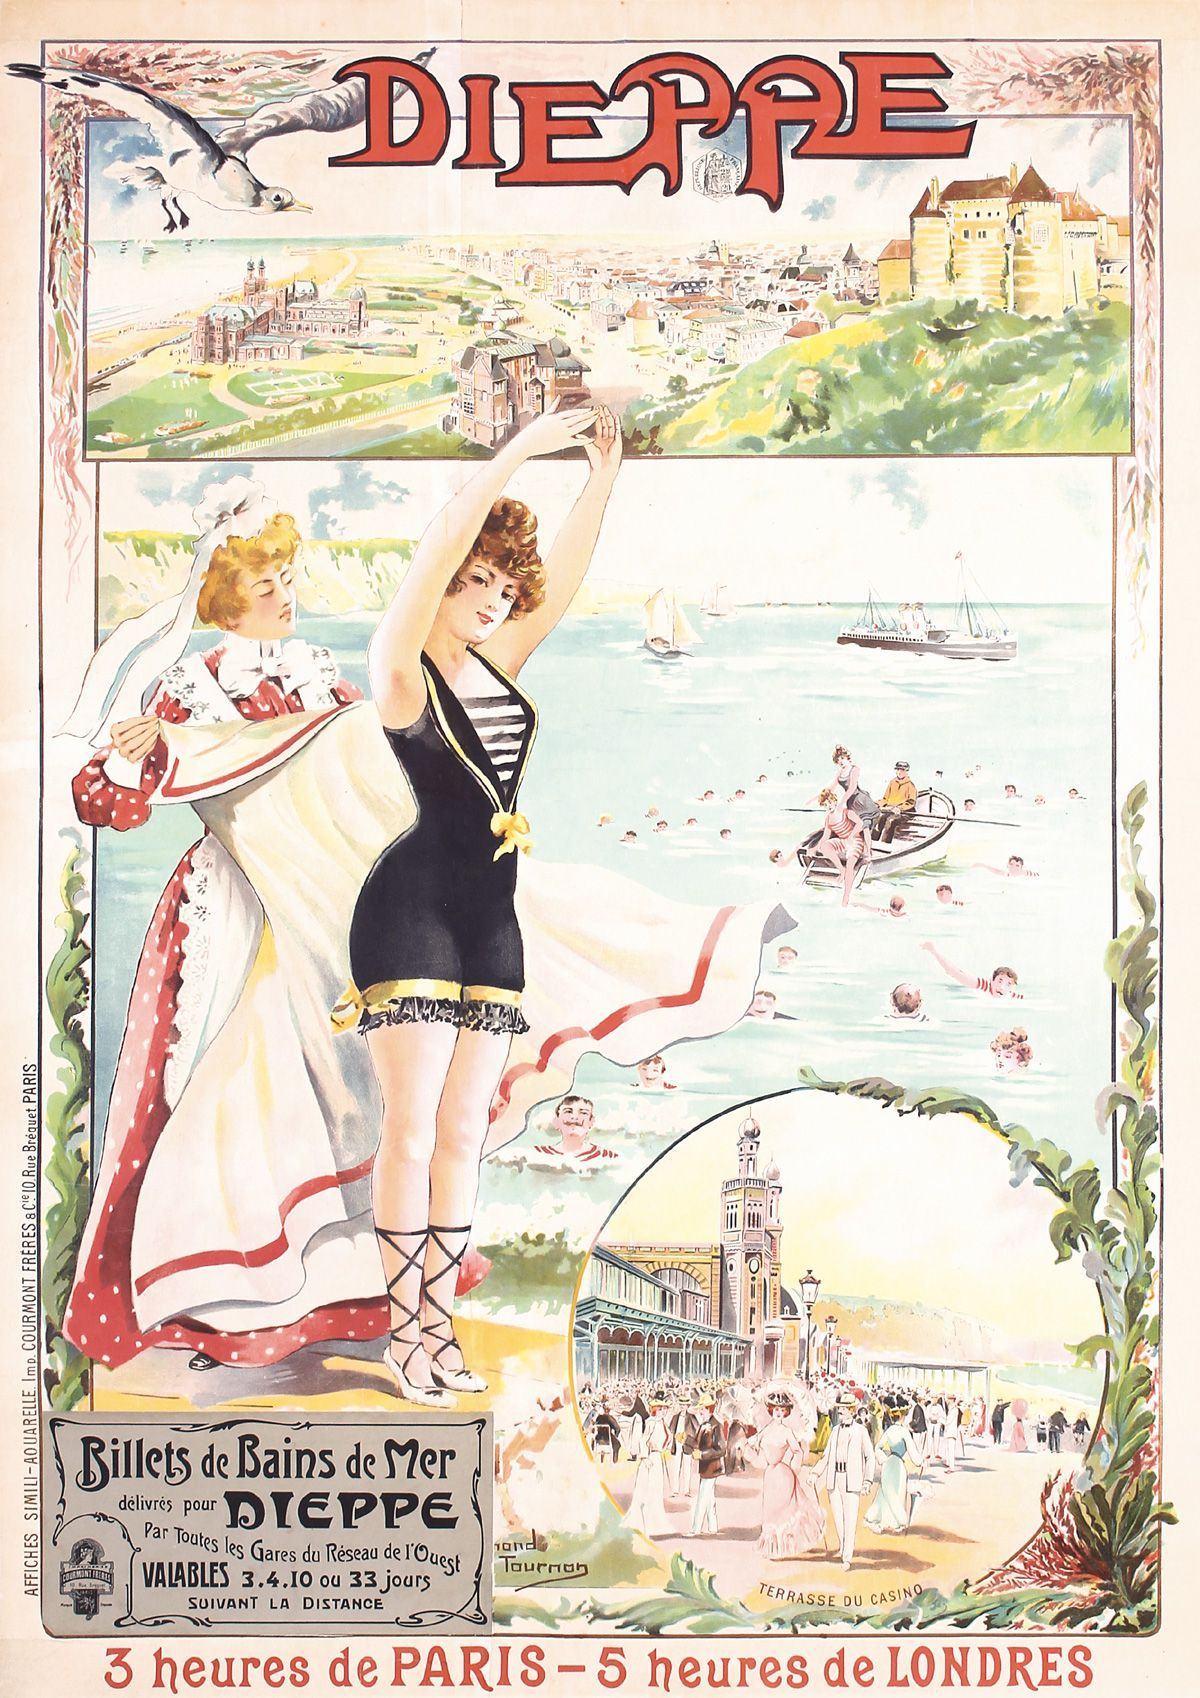 Pin By Cheryl Earl On Travel Posters 15 Vintage Travel Posters Travel Posters Railway Posters